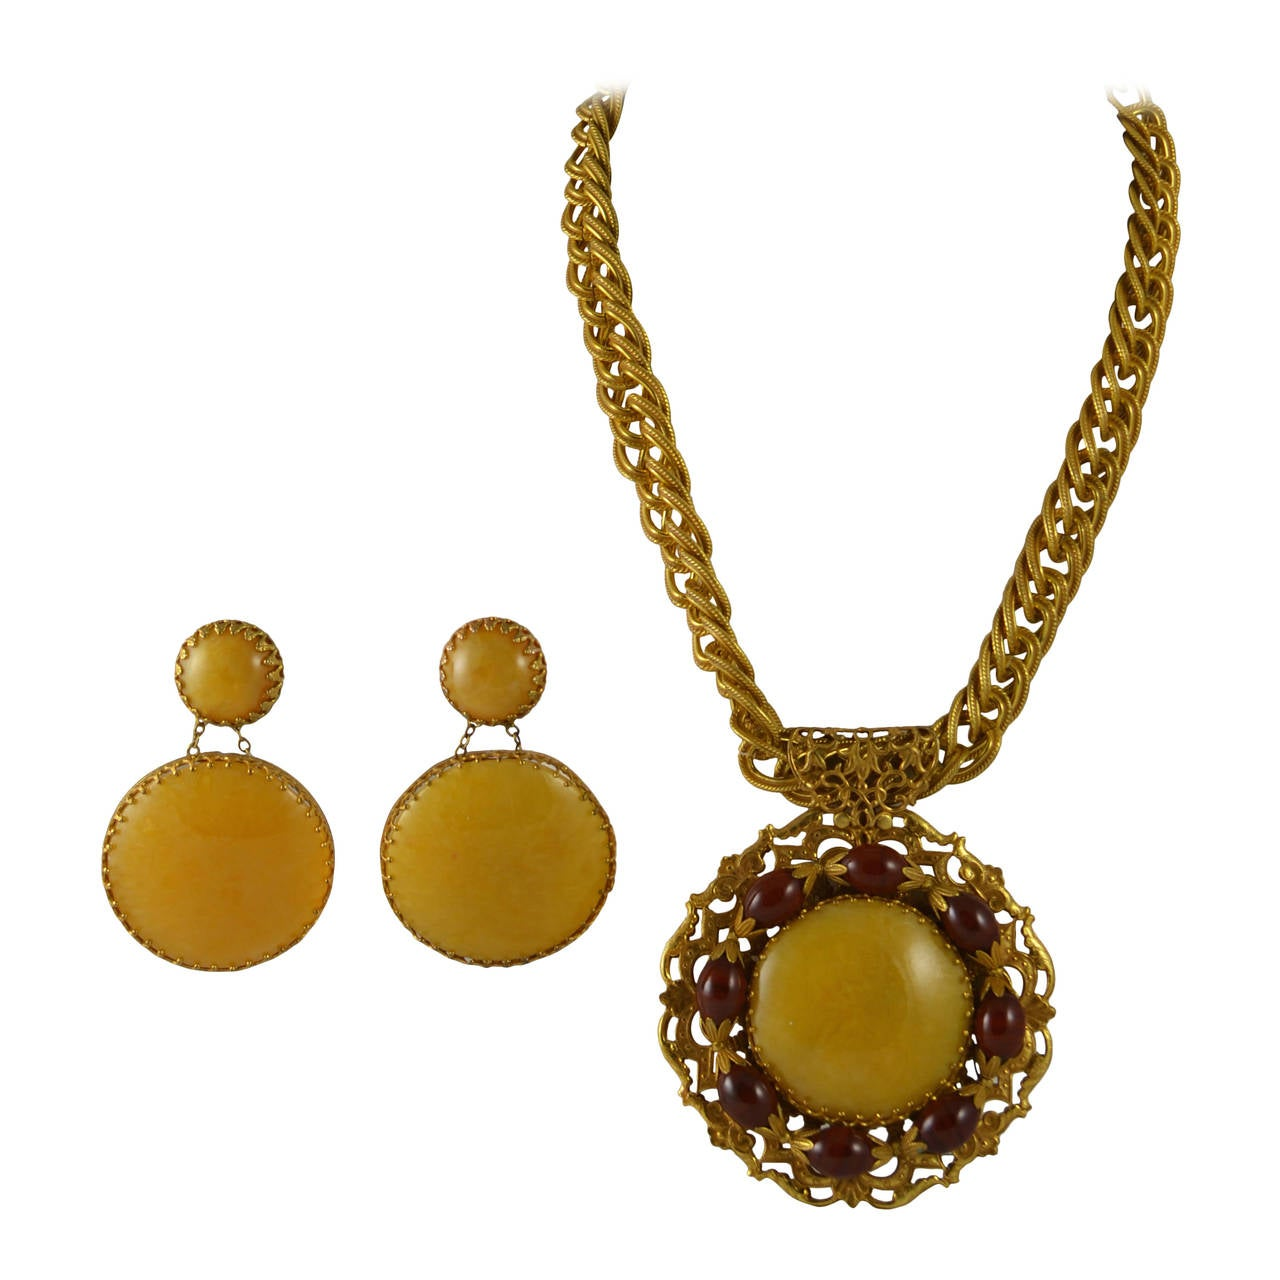 Miriam Haskell Medallion Necklace And Earrings Set At 1stdibs